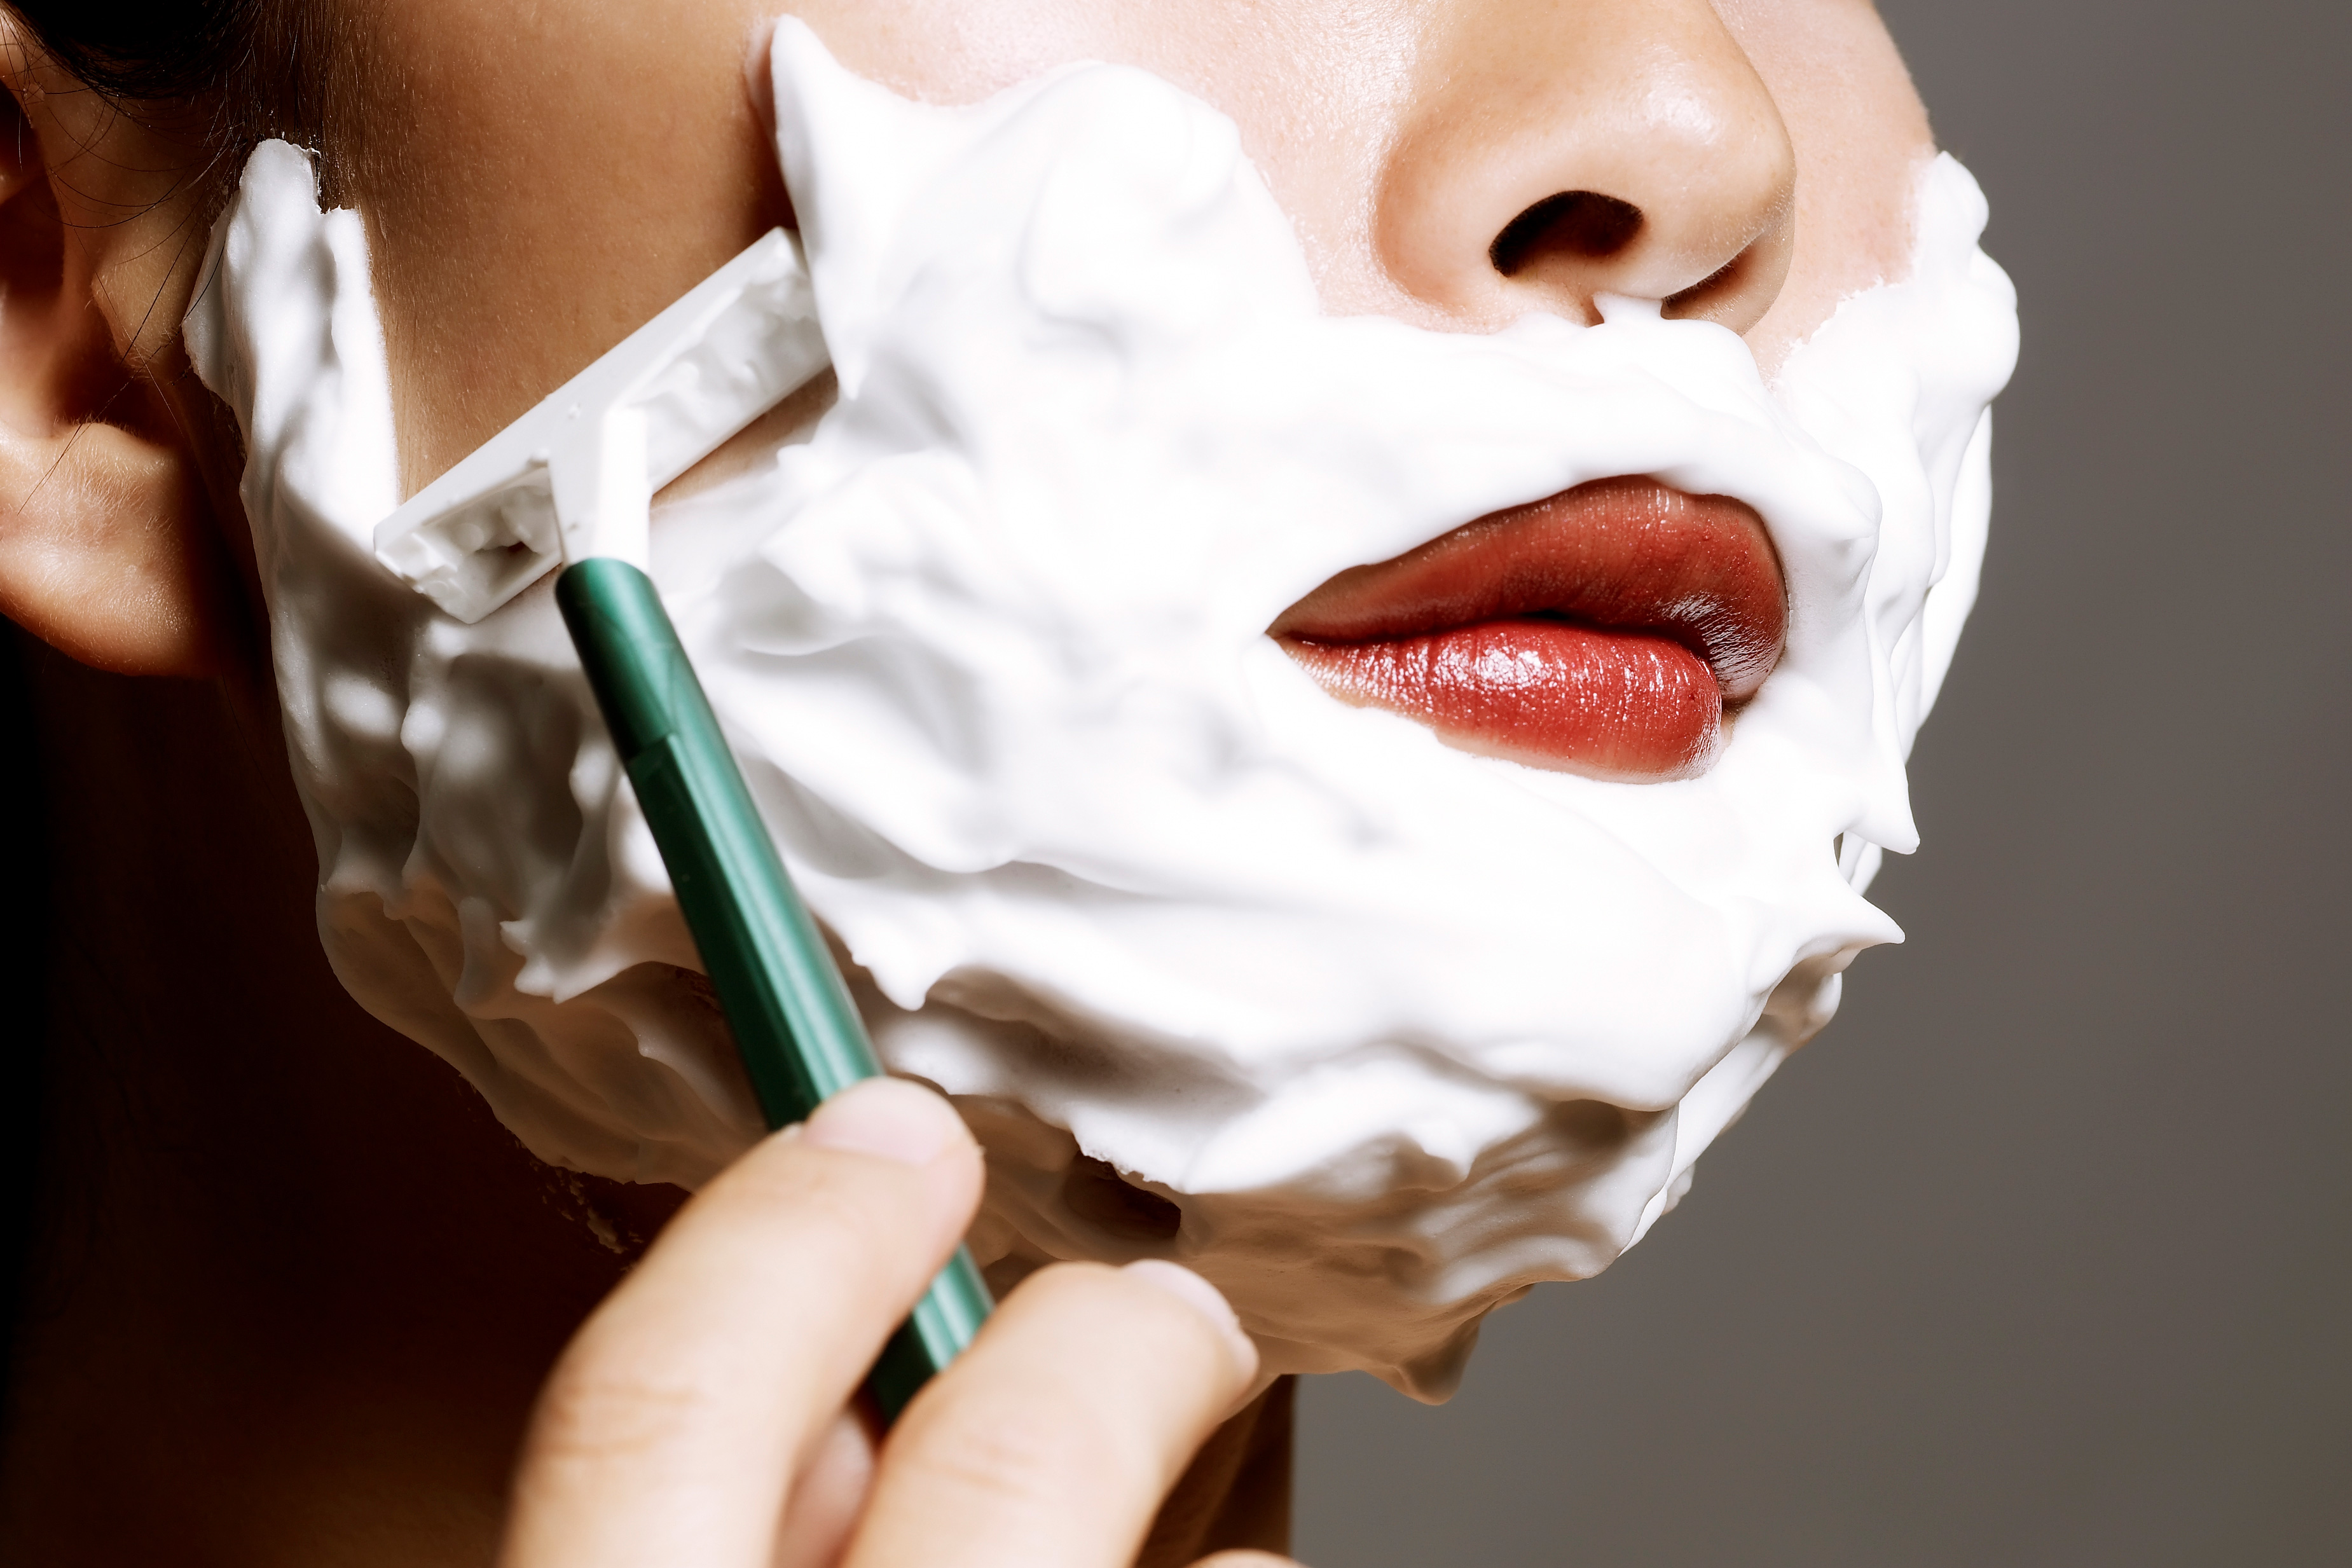 Lower half of a woman's face is covered in shaving cream as she uses a razor to shave her face